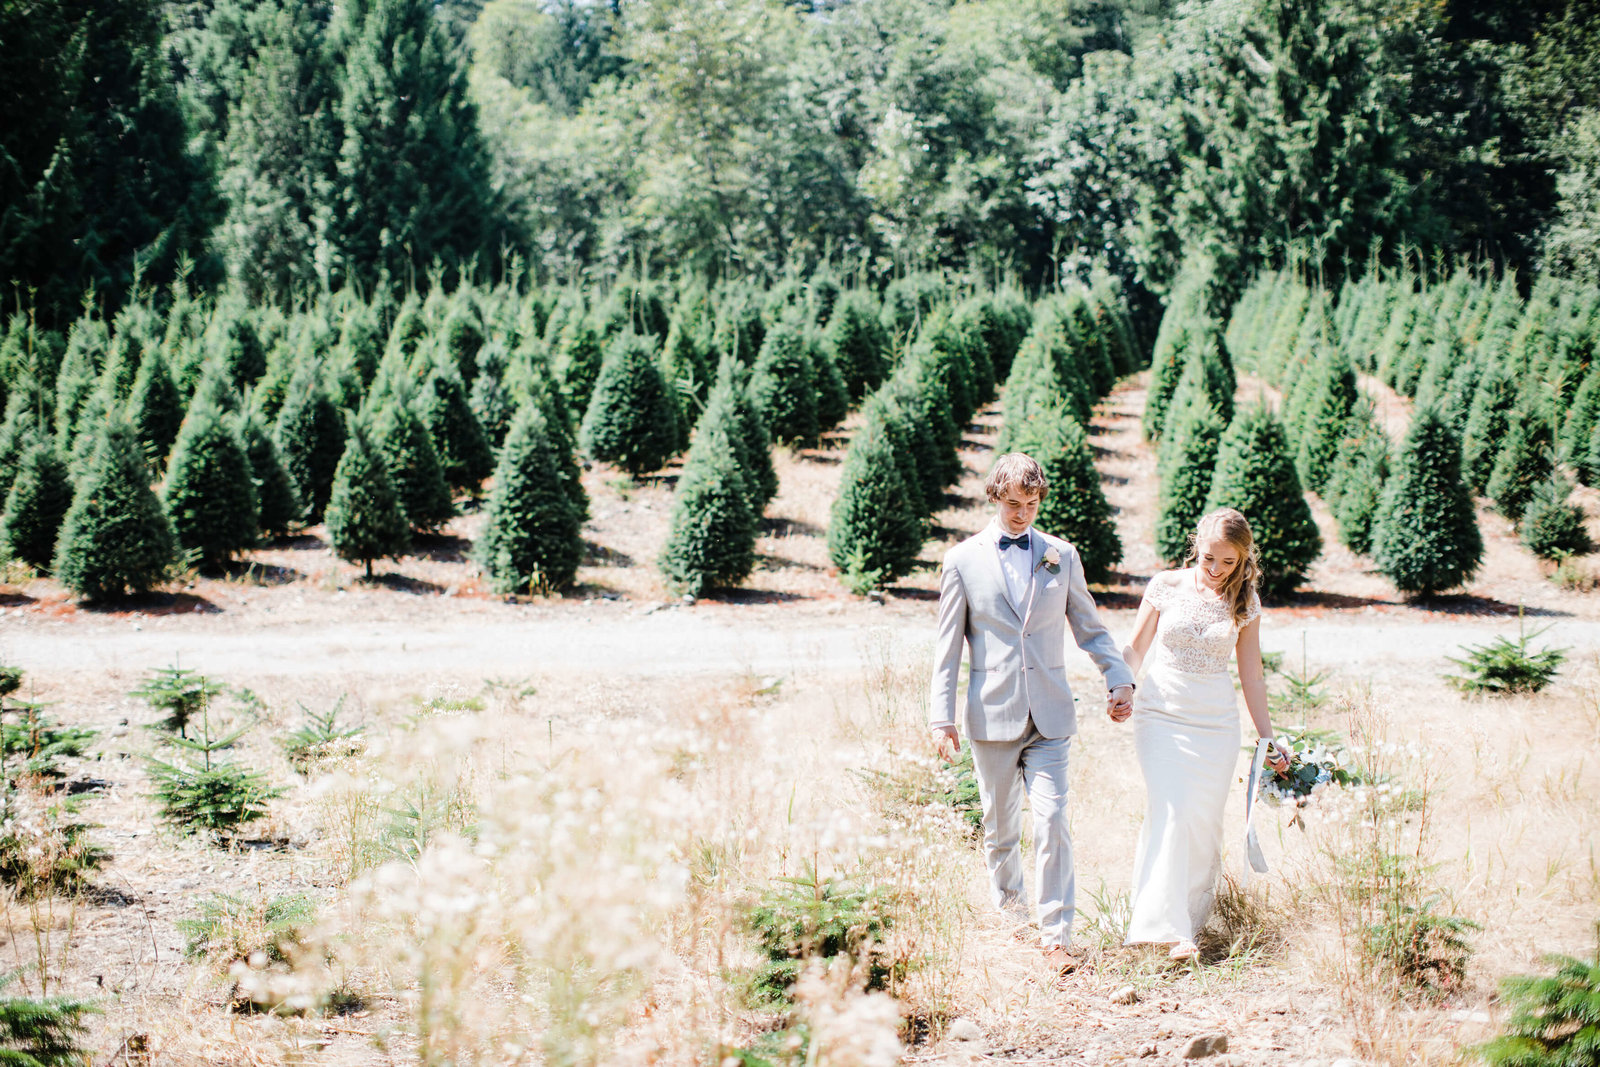 Trinity-tree-farm-wedding-photos-by-Adina-Preston-Photography-2019-122